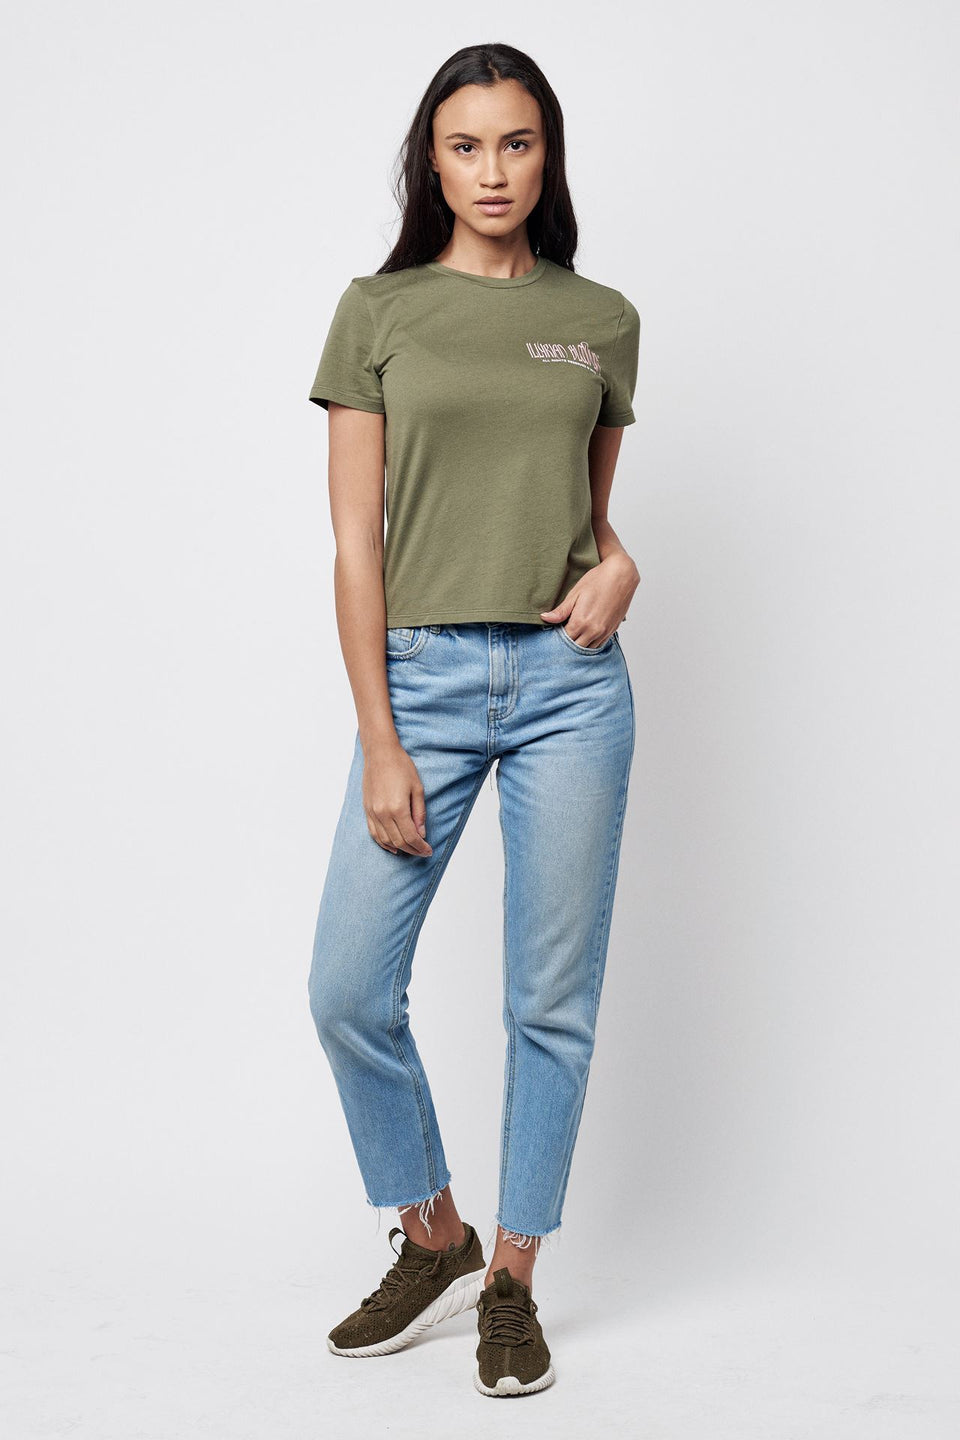 Women's Ulli T-shirt